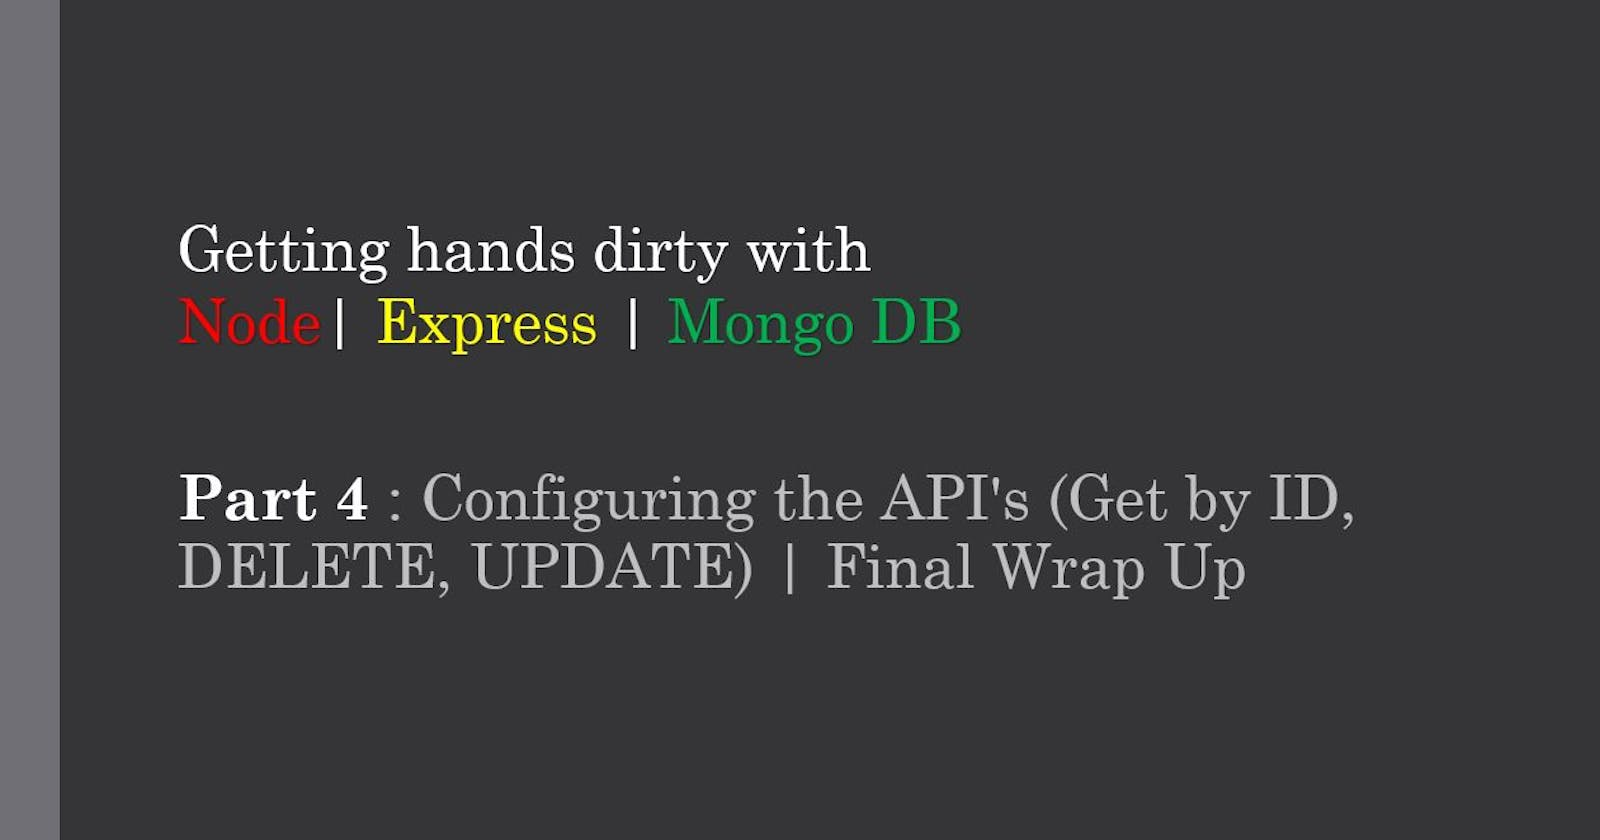 CRUD Application Using Node JS - PART 4 : Configuring the API's (Get by ID, DELETE, UPDATE) | Final Wrap Up